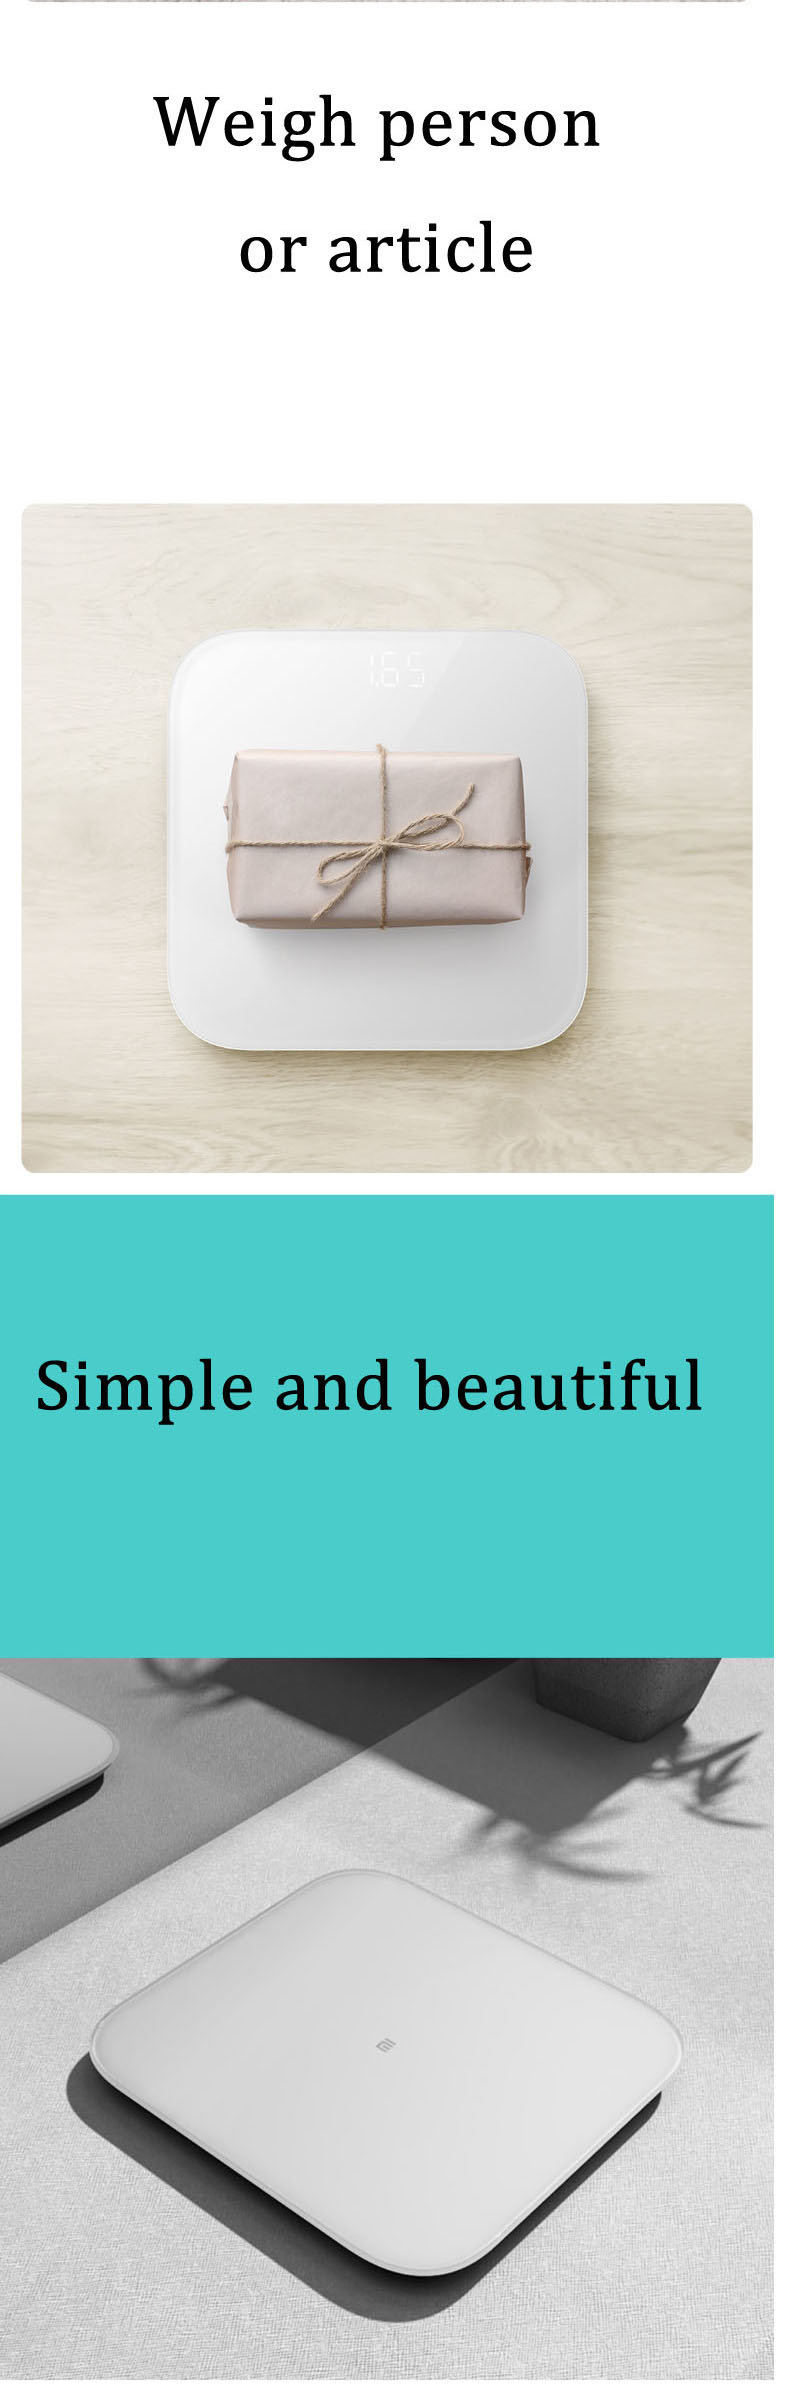 XIAOMI 2.0 Intelligent bluetooth Weight Scale Smart APP Control Precision Weight Scale LED Display Fitness Yoga Tools Scale Support Android IOS 14